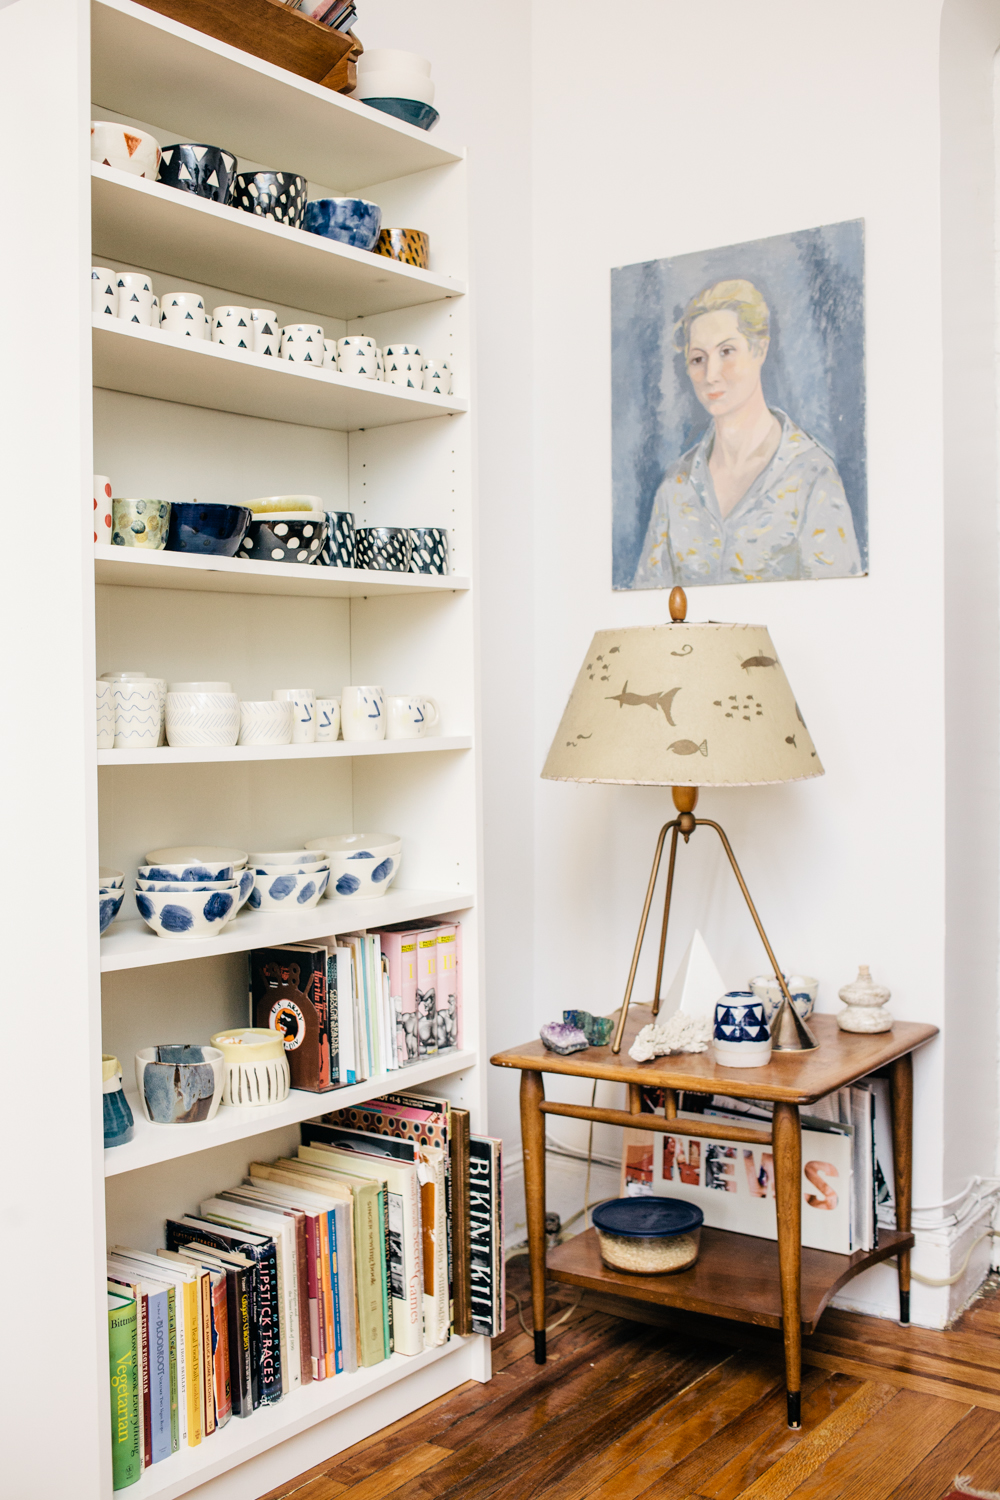 Ceramics artist and reiki healer Rachel Howe. Check out more images and the BK Styled profile here -  http://bit.ly/194oGPc    © Jocelyn Baun